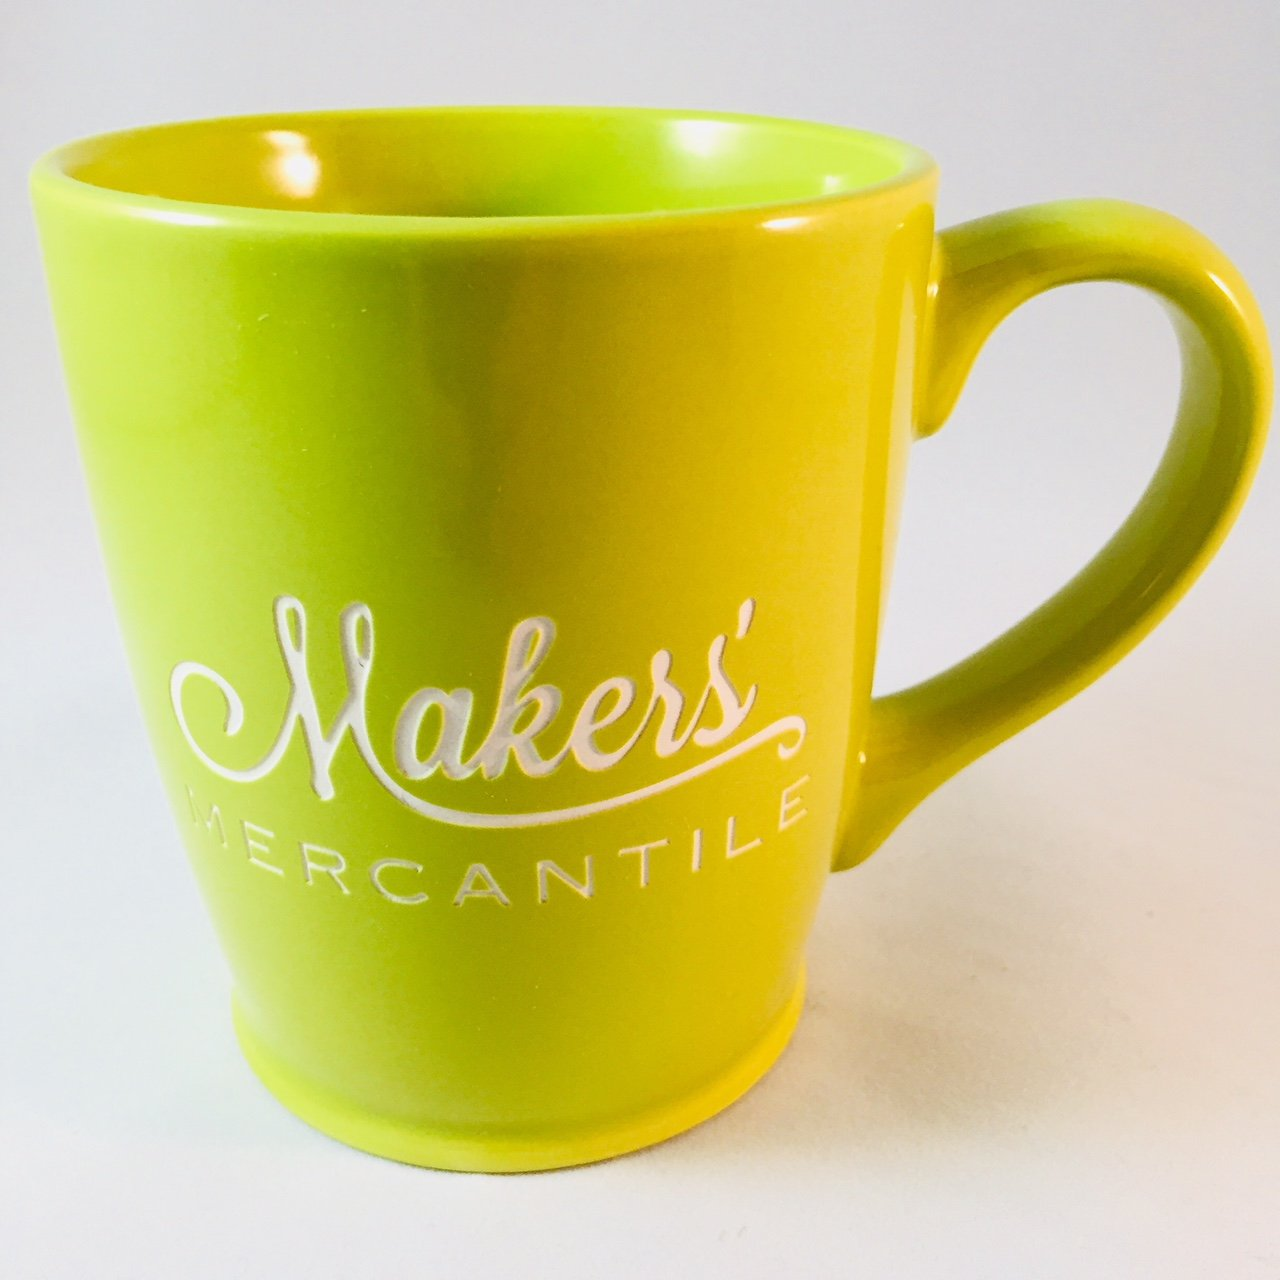 Makers Mercantile Mug